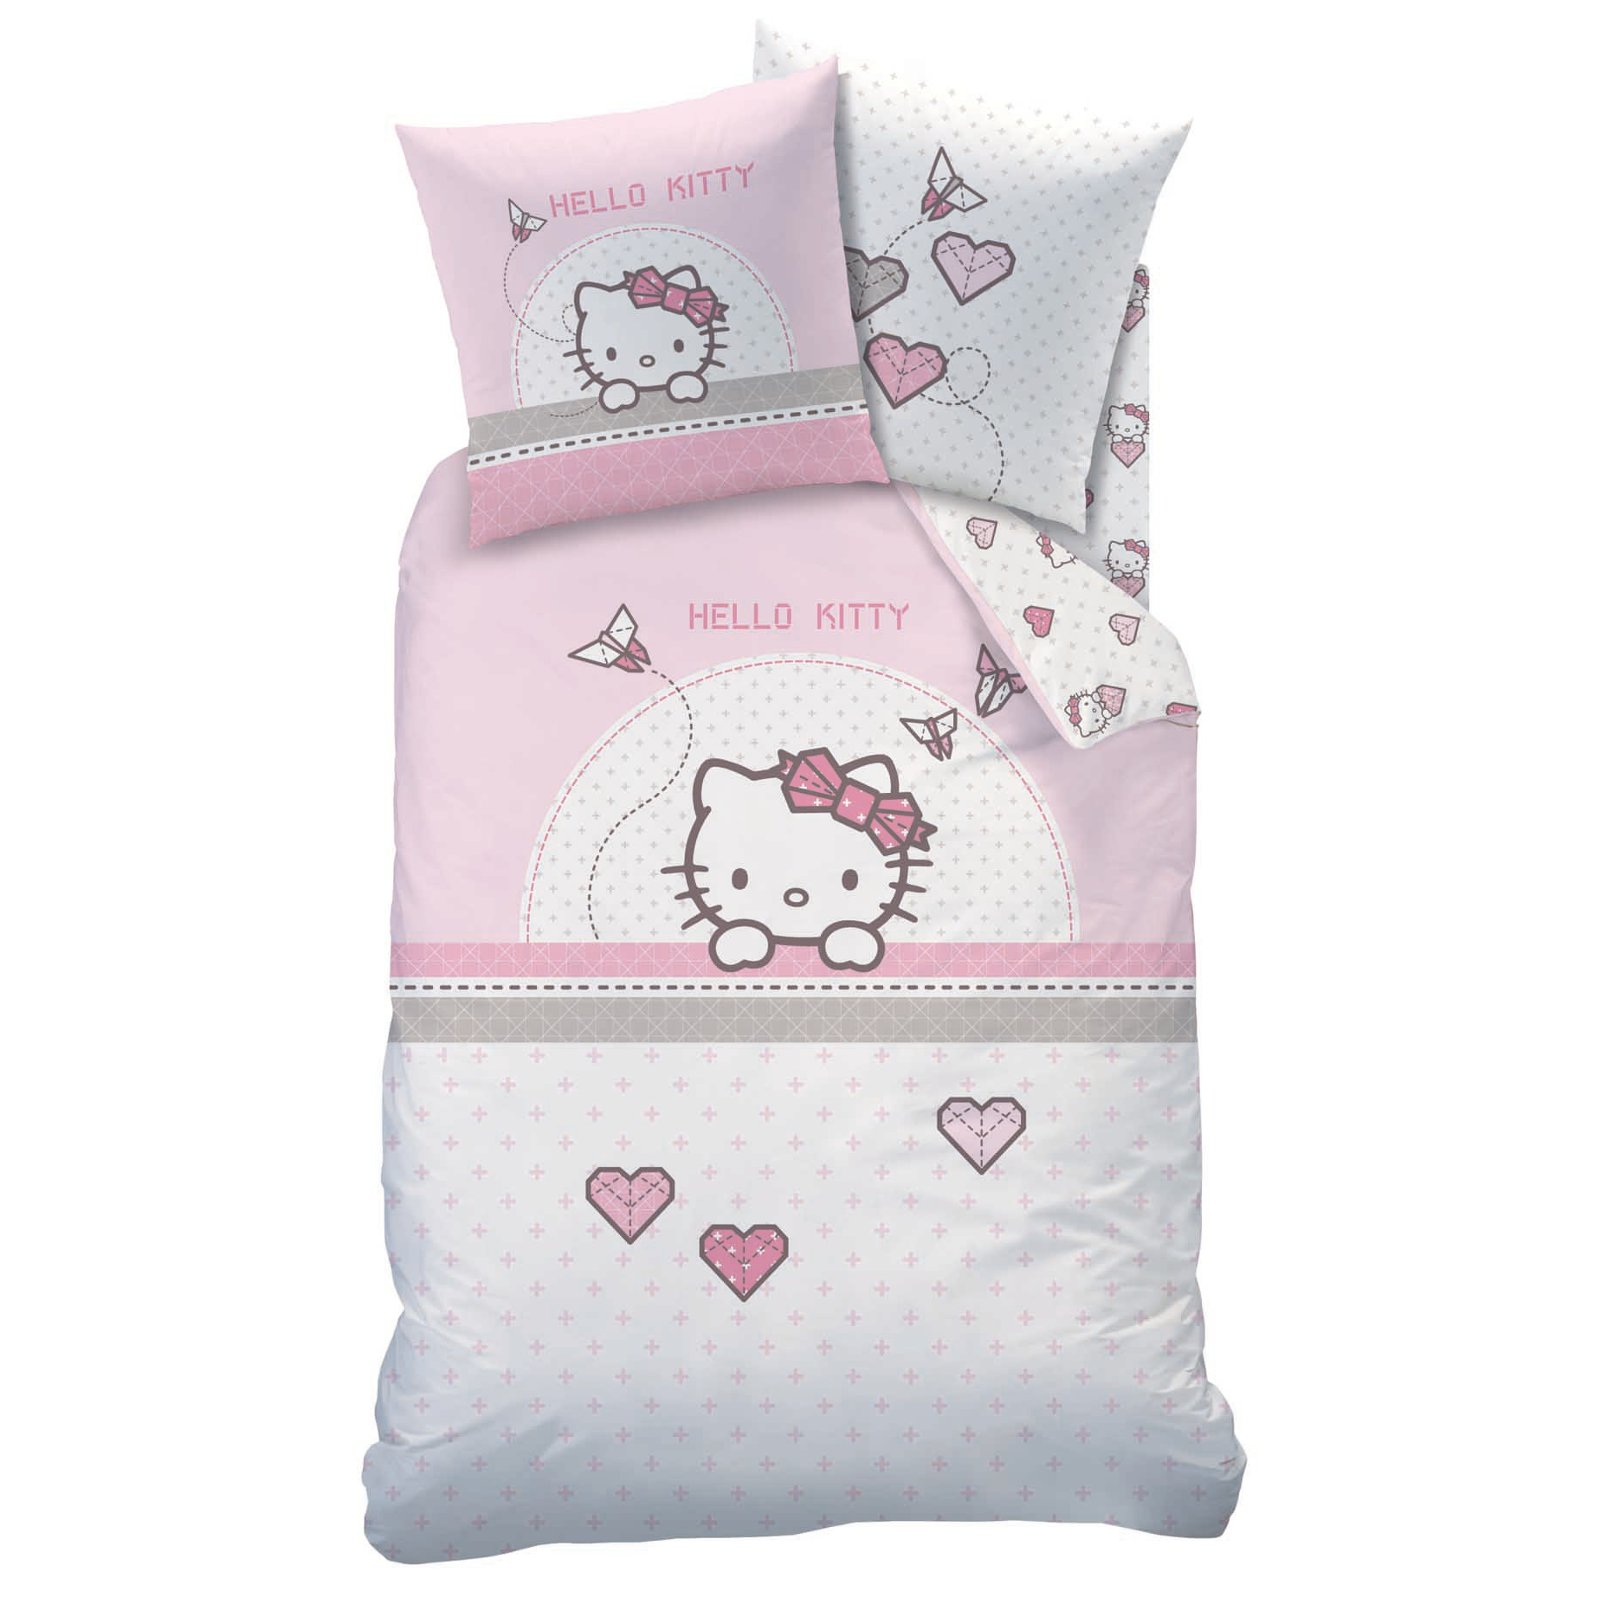 Couette hello kitty lit b b images - Parure de lit hello kitty 1 personne ...